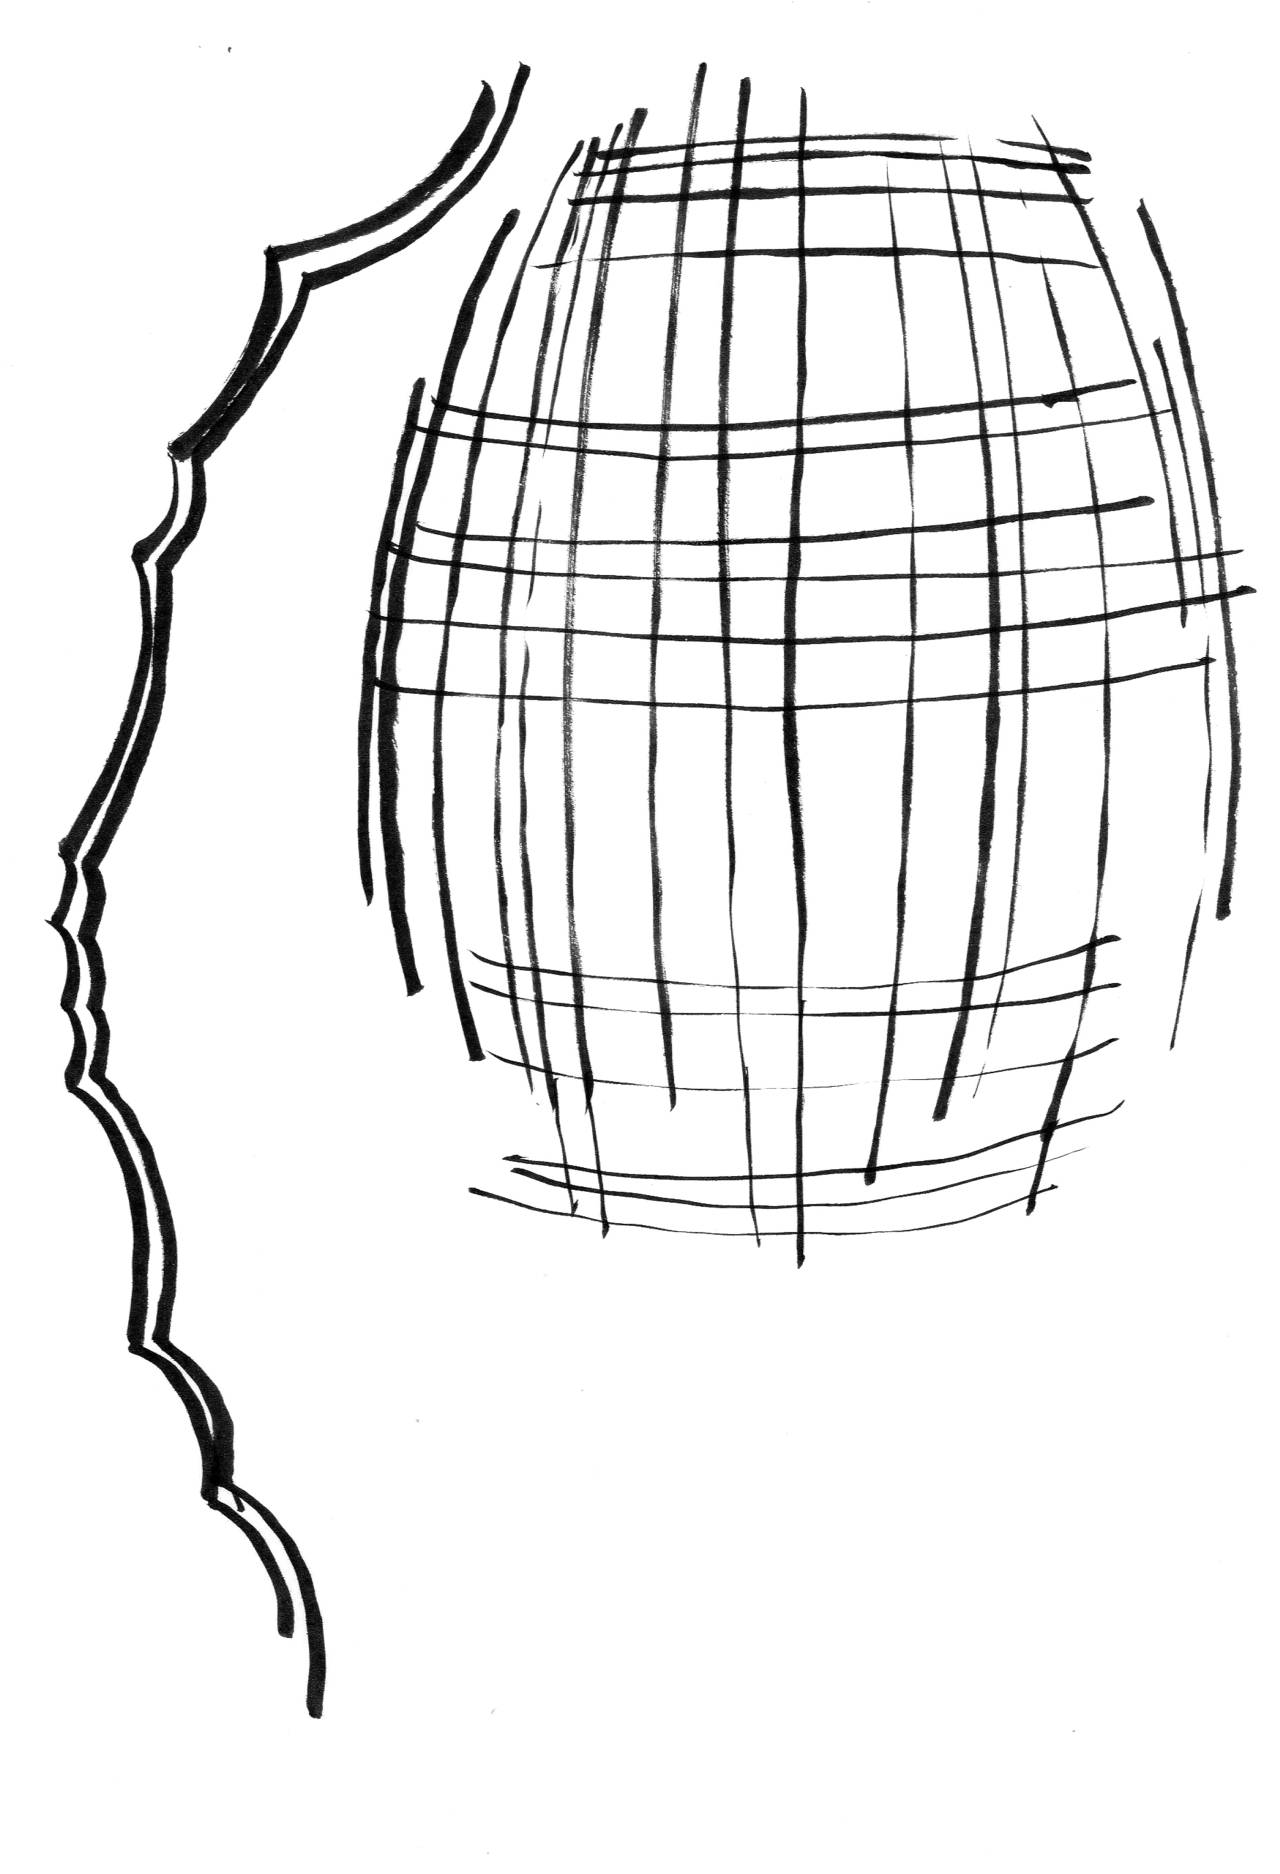 Tartan by Foscarini (sketch)